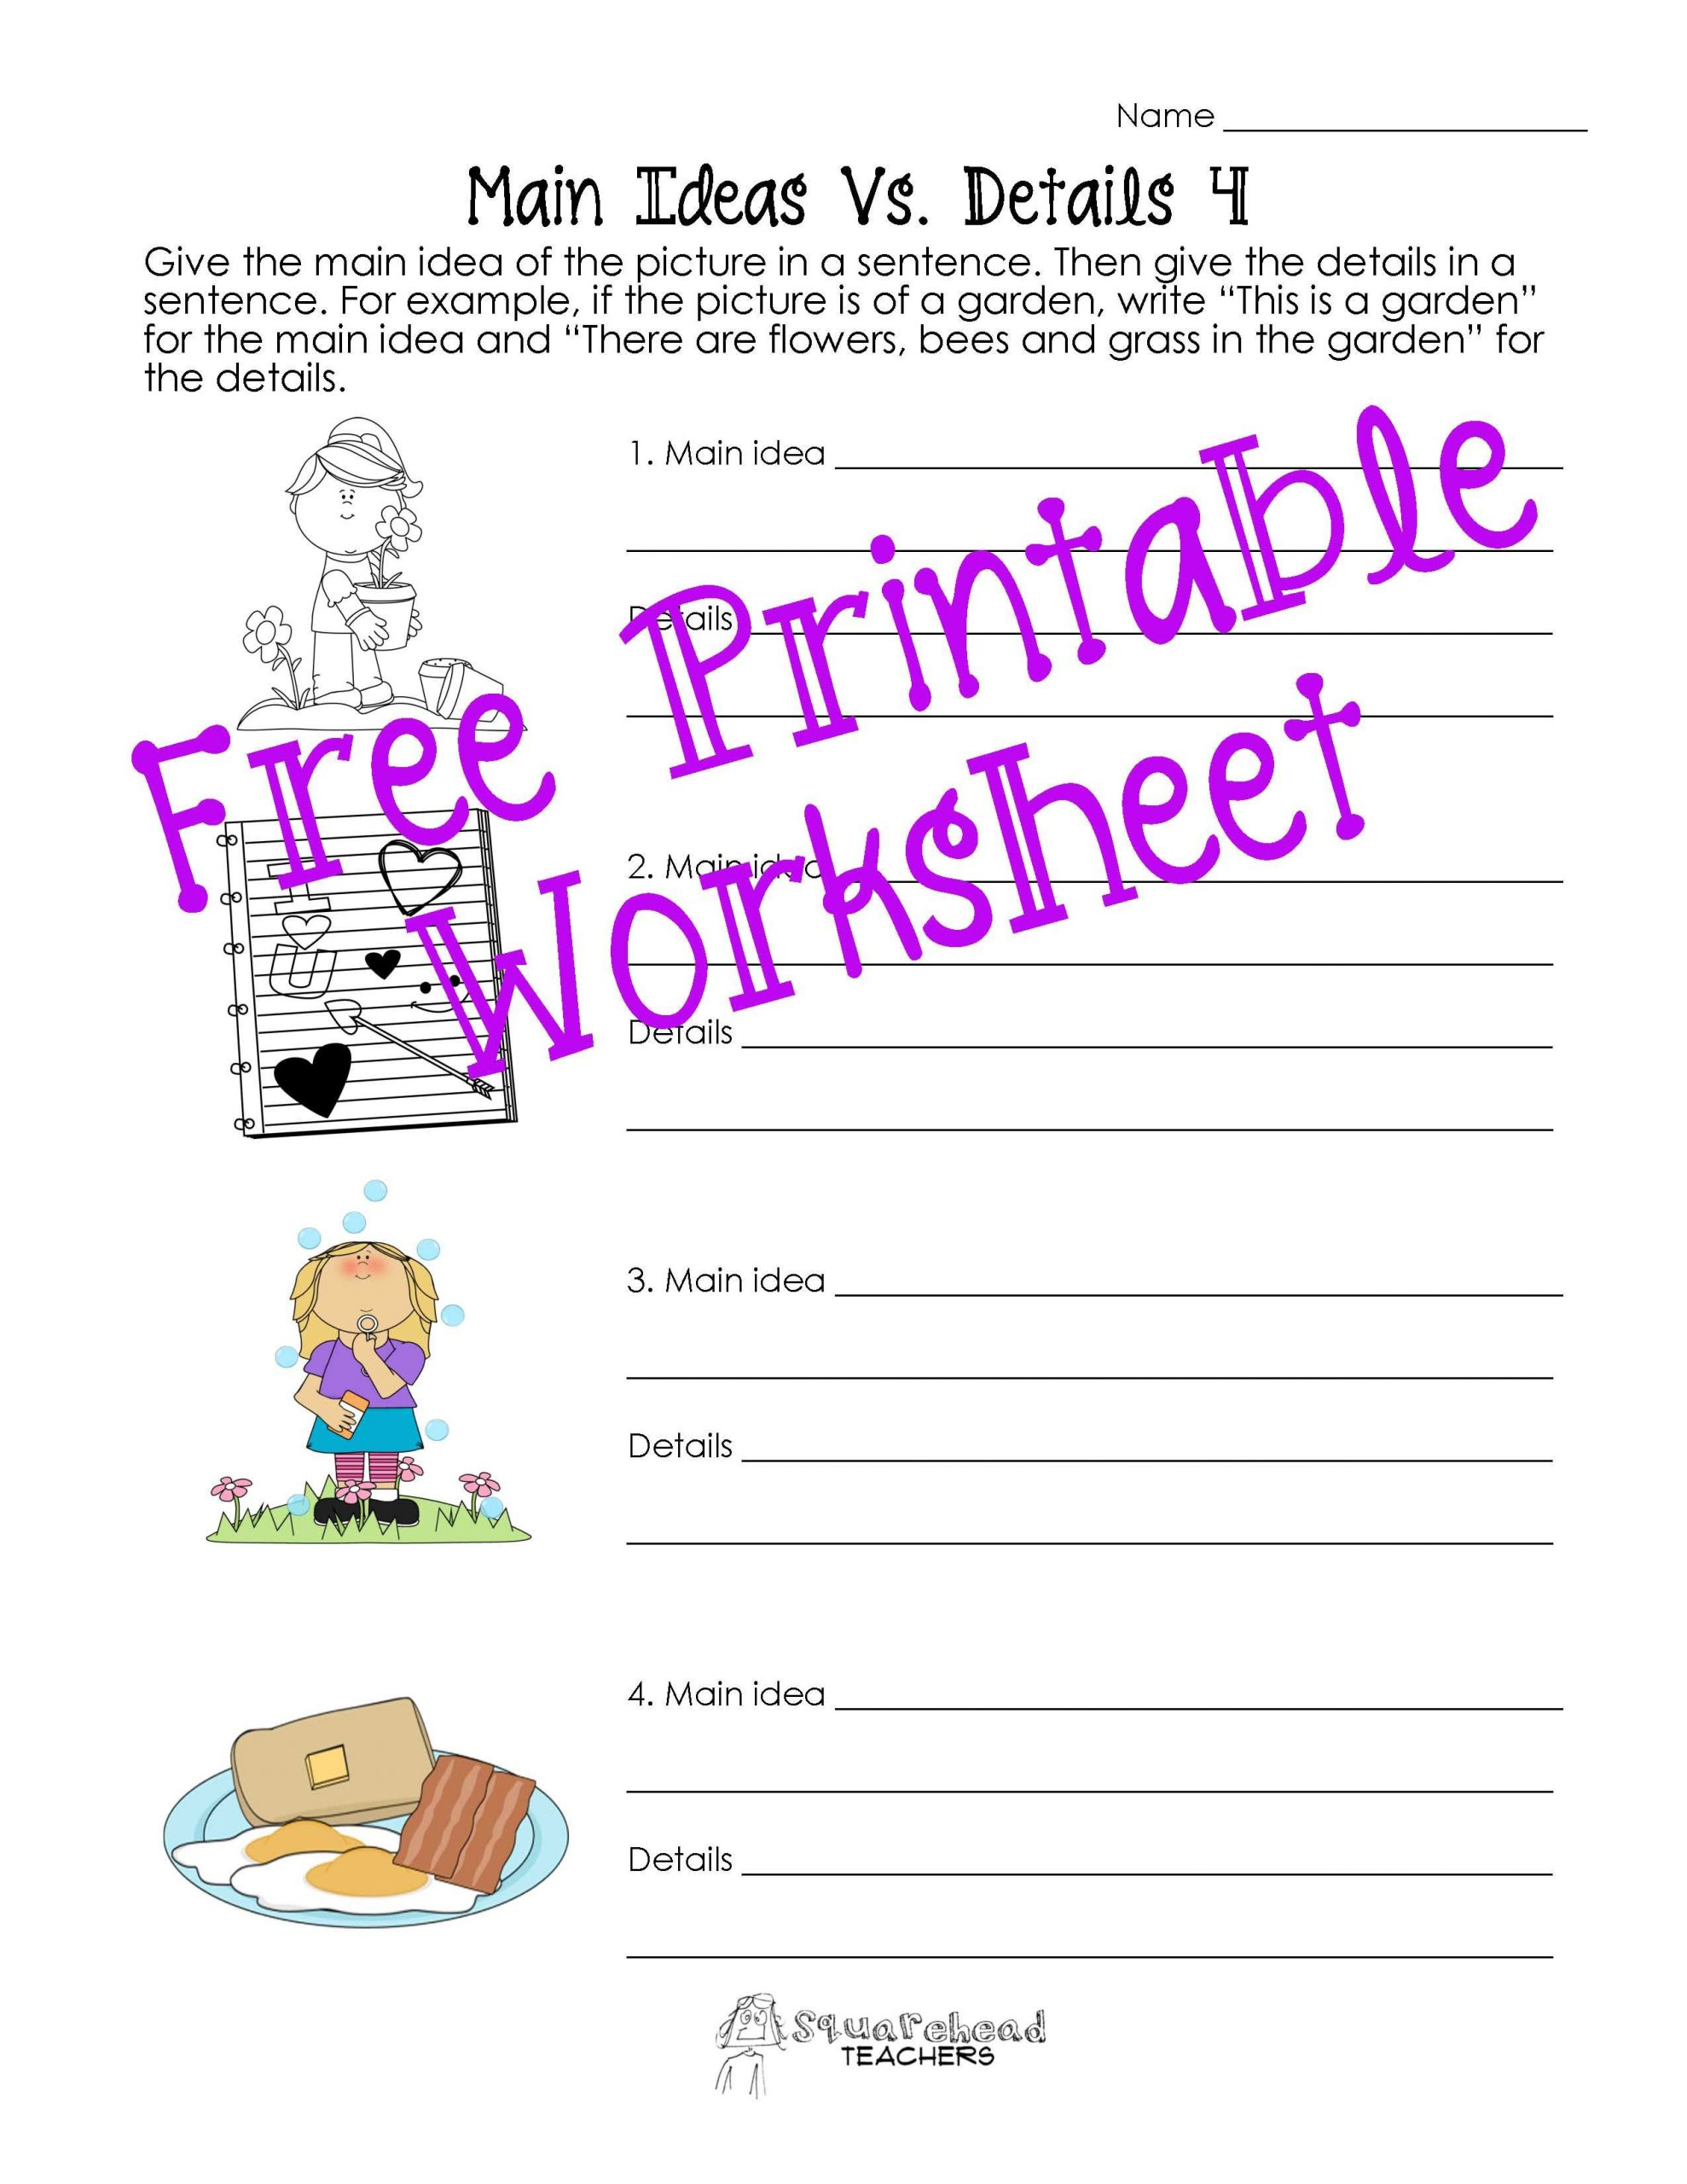 Free Printable Main Idea Worksheets Main Idea Vs Details Worksheets Post 2